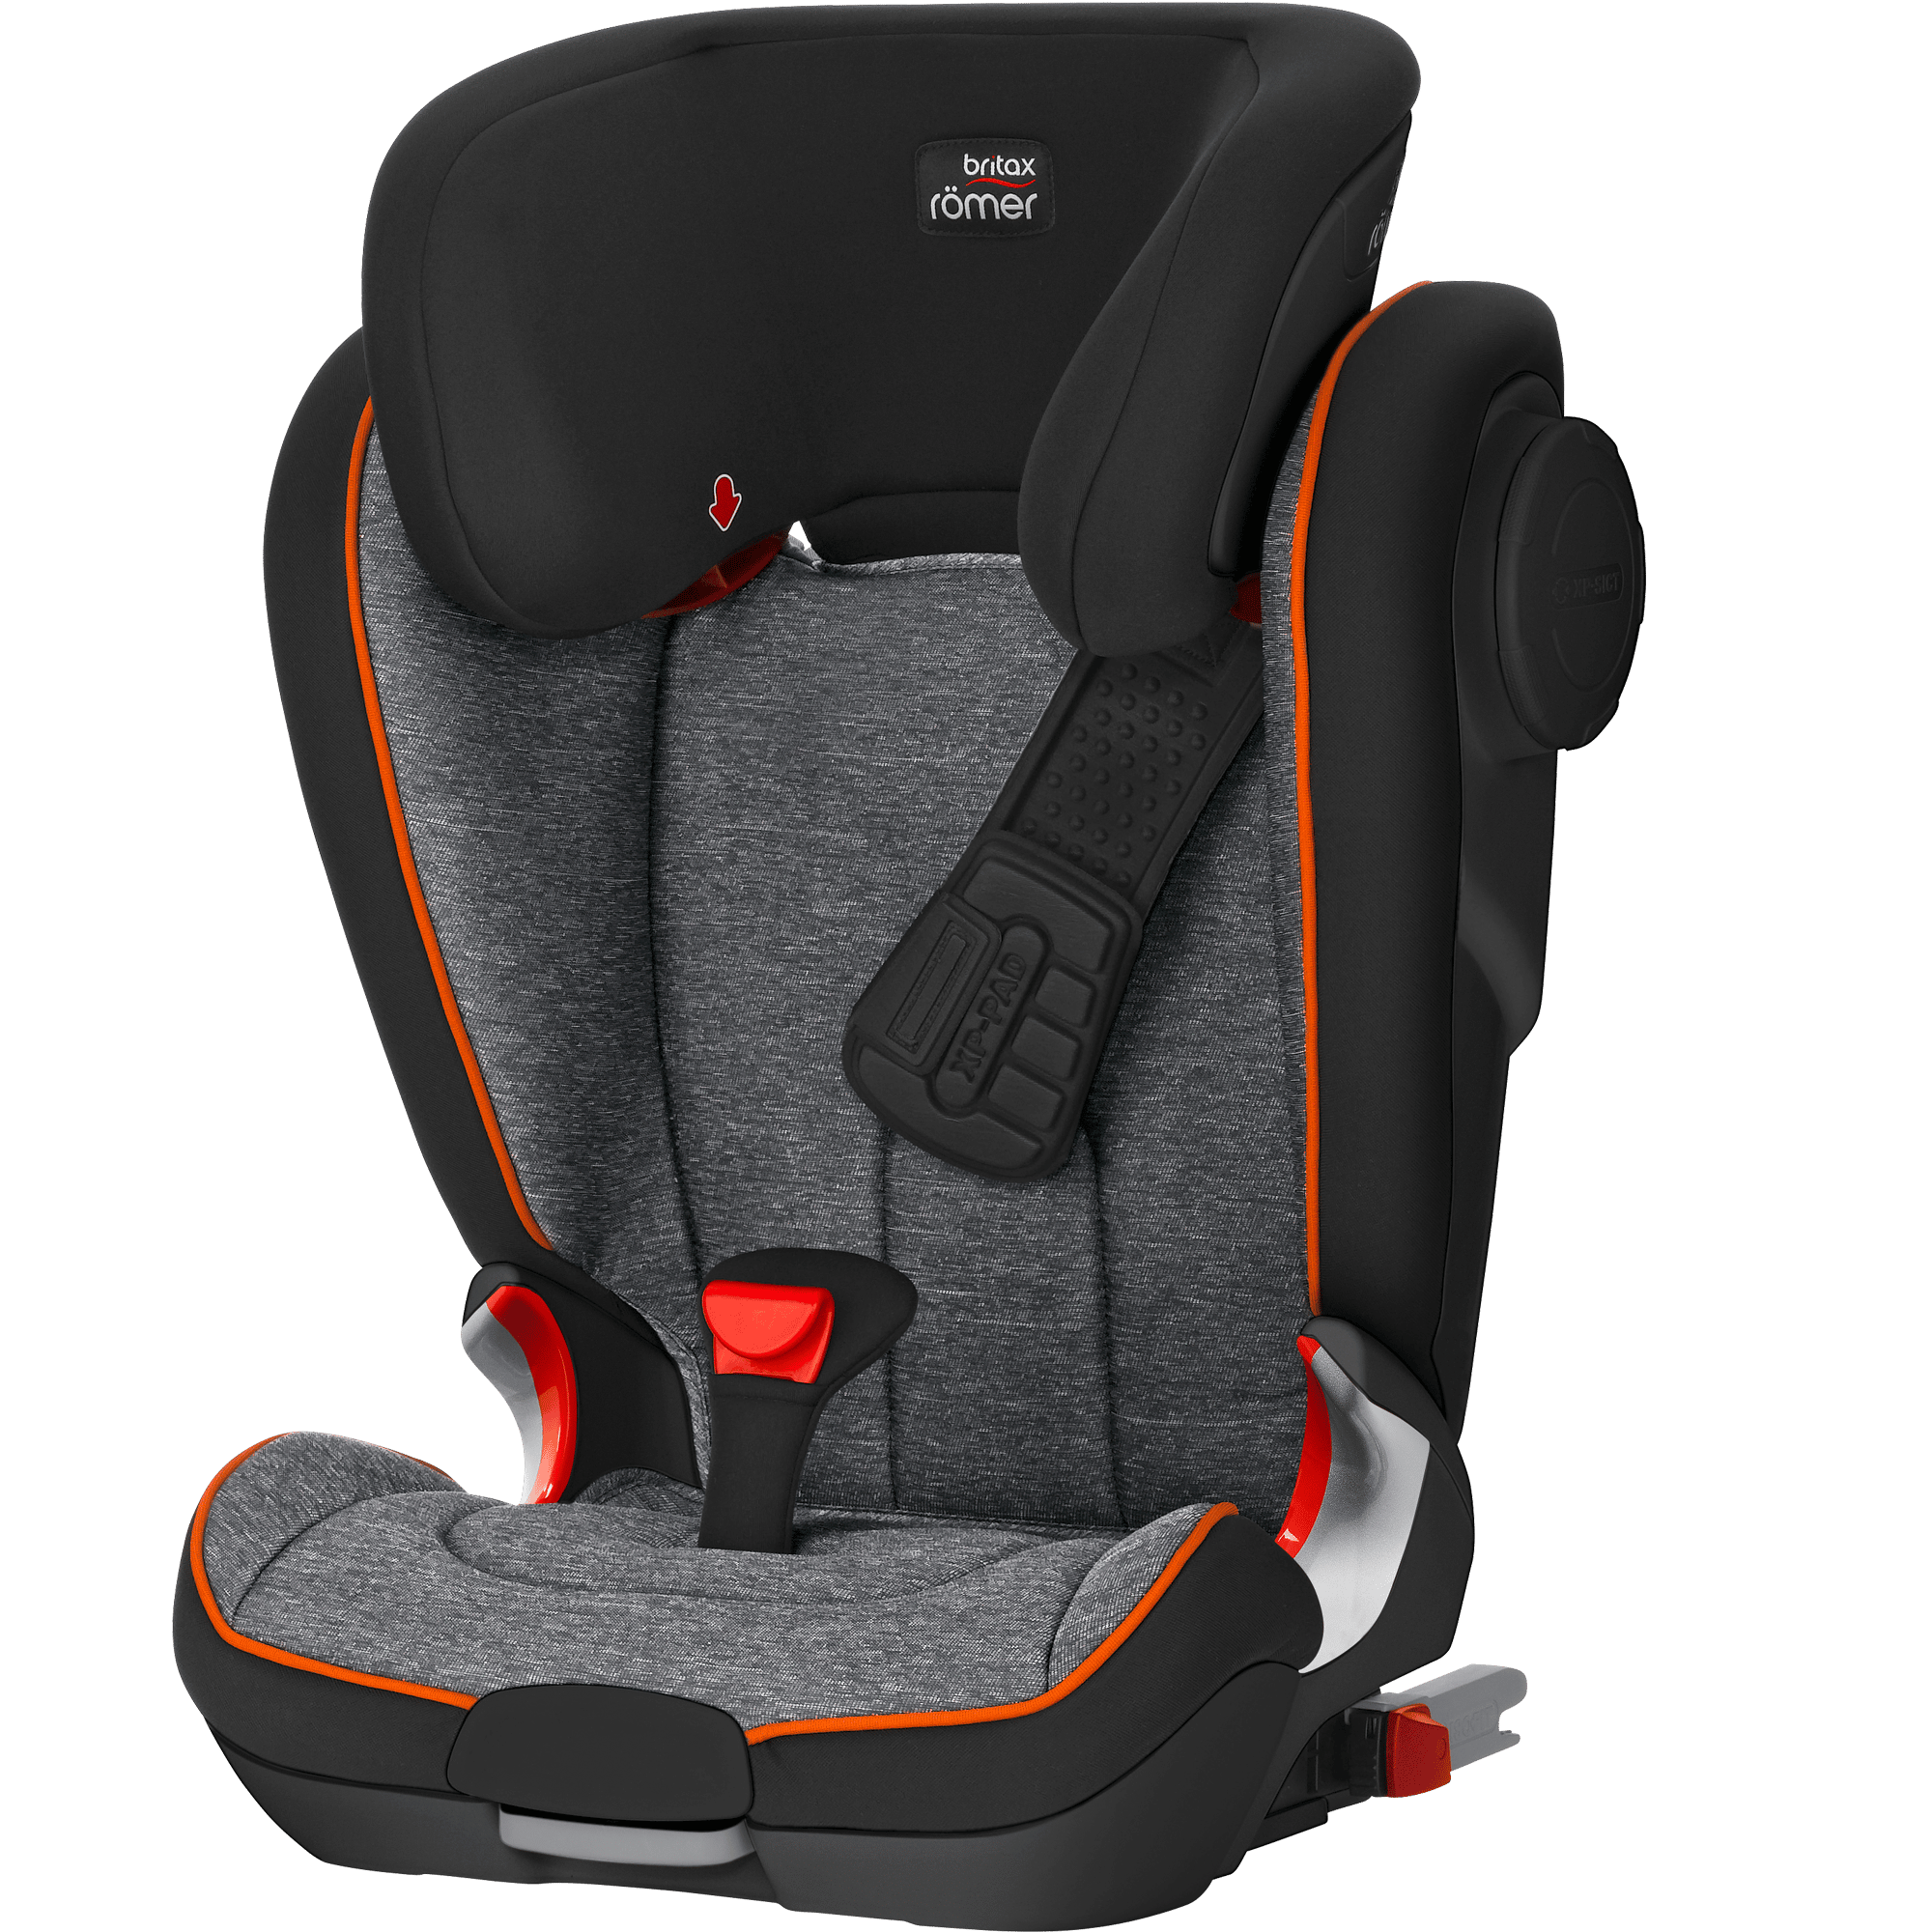 britax r mer kidfix ii xp sict britax r emer. Black Bedroom Furniture Sets. Home Design Ideas